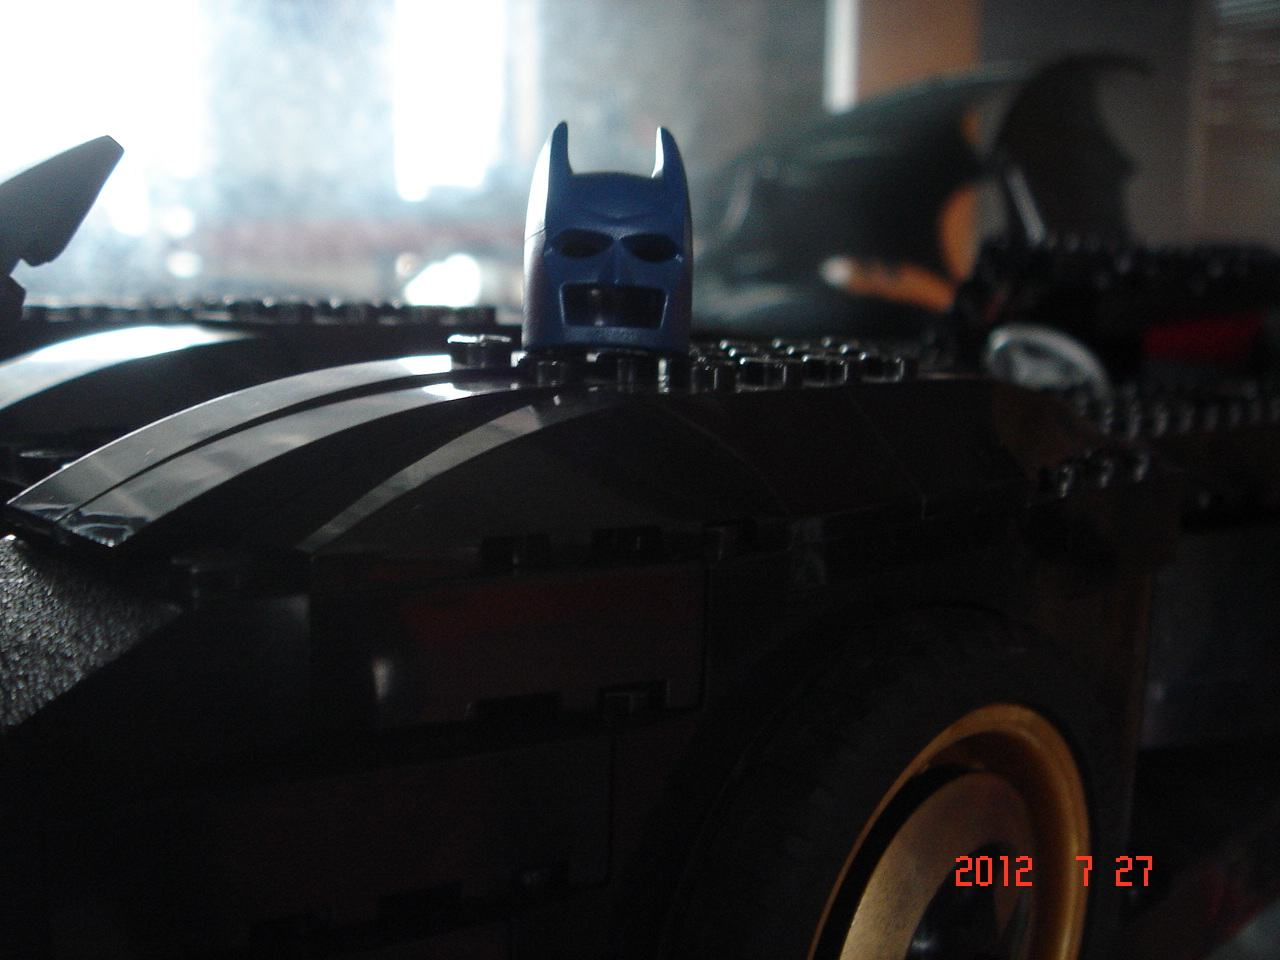 batman_ucc-office_0727001.jpg